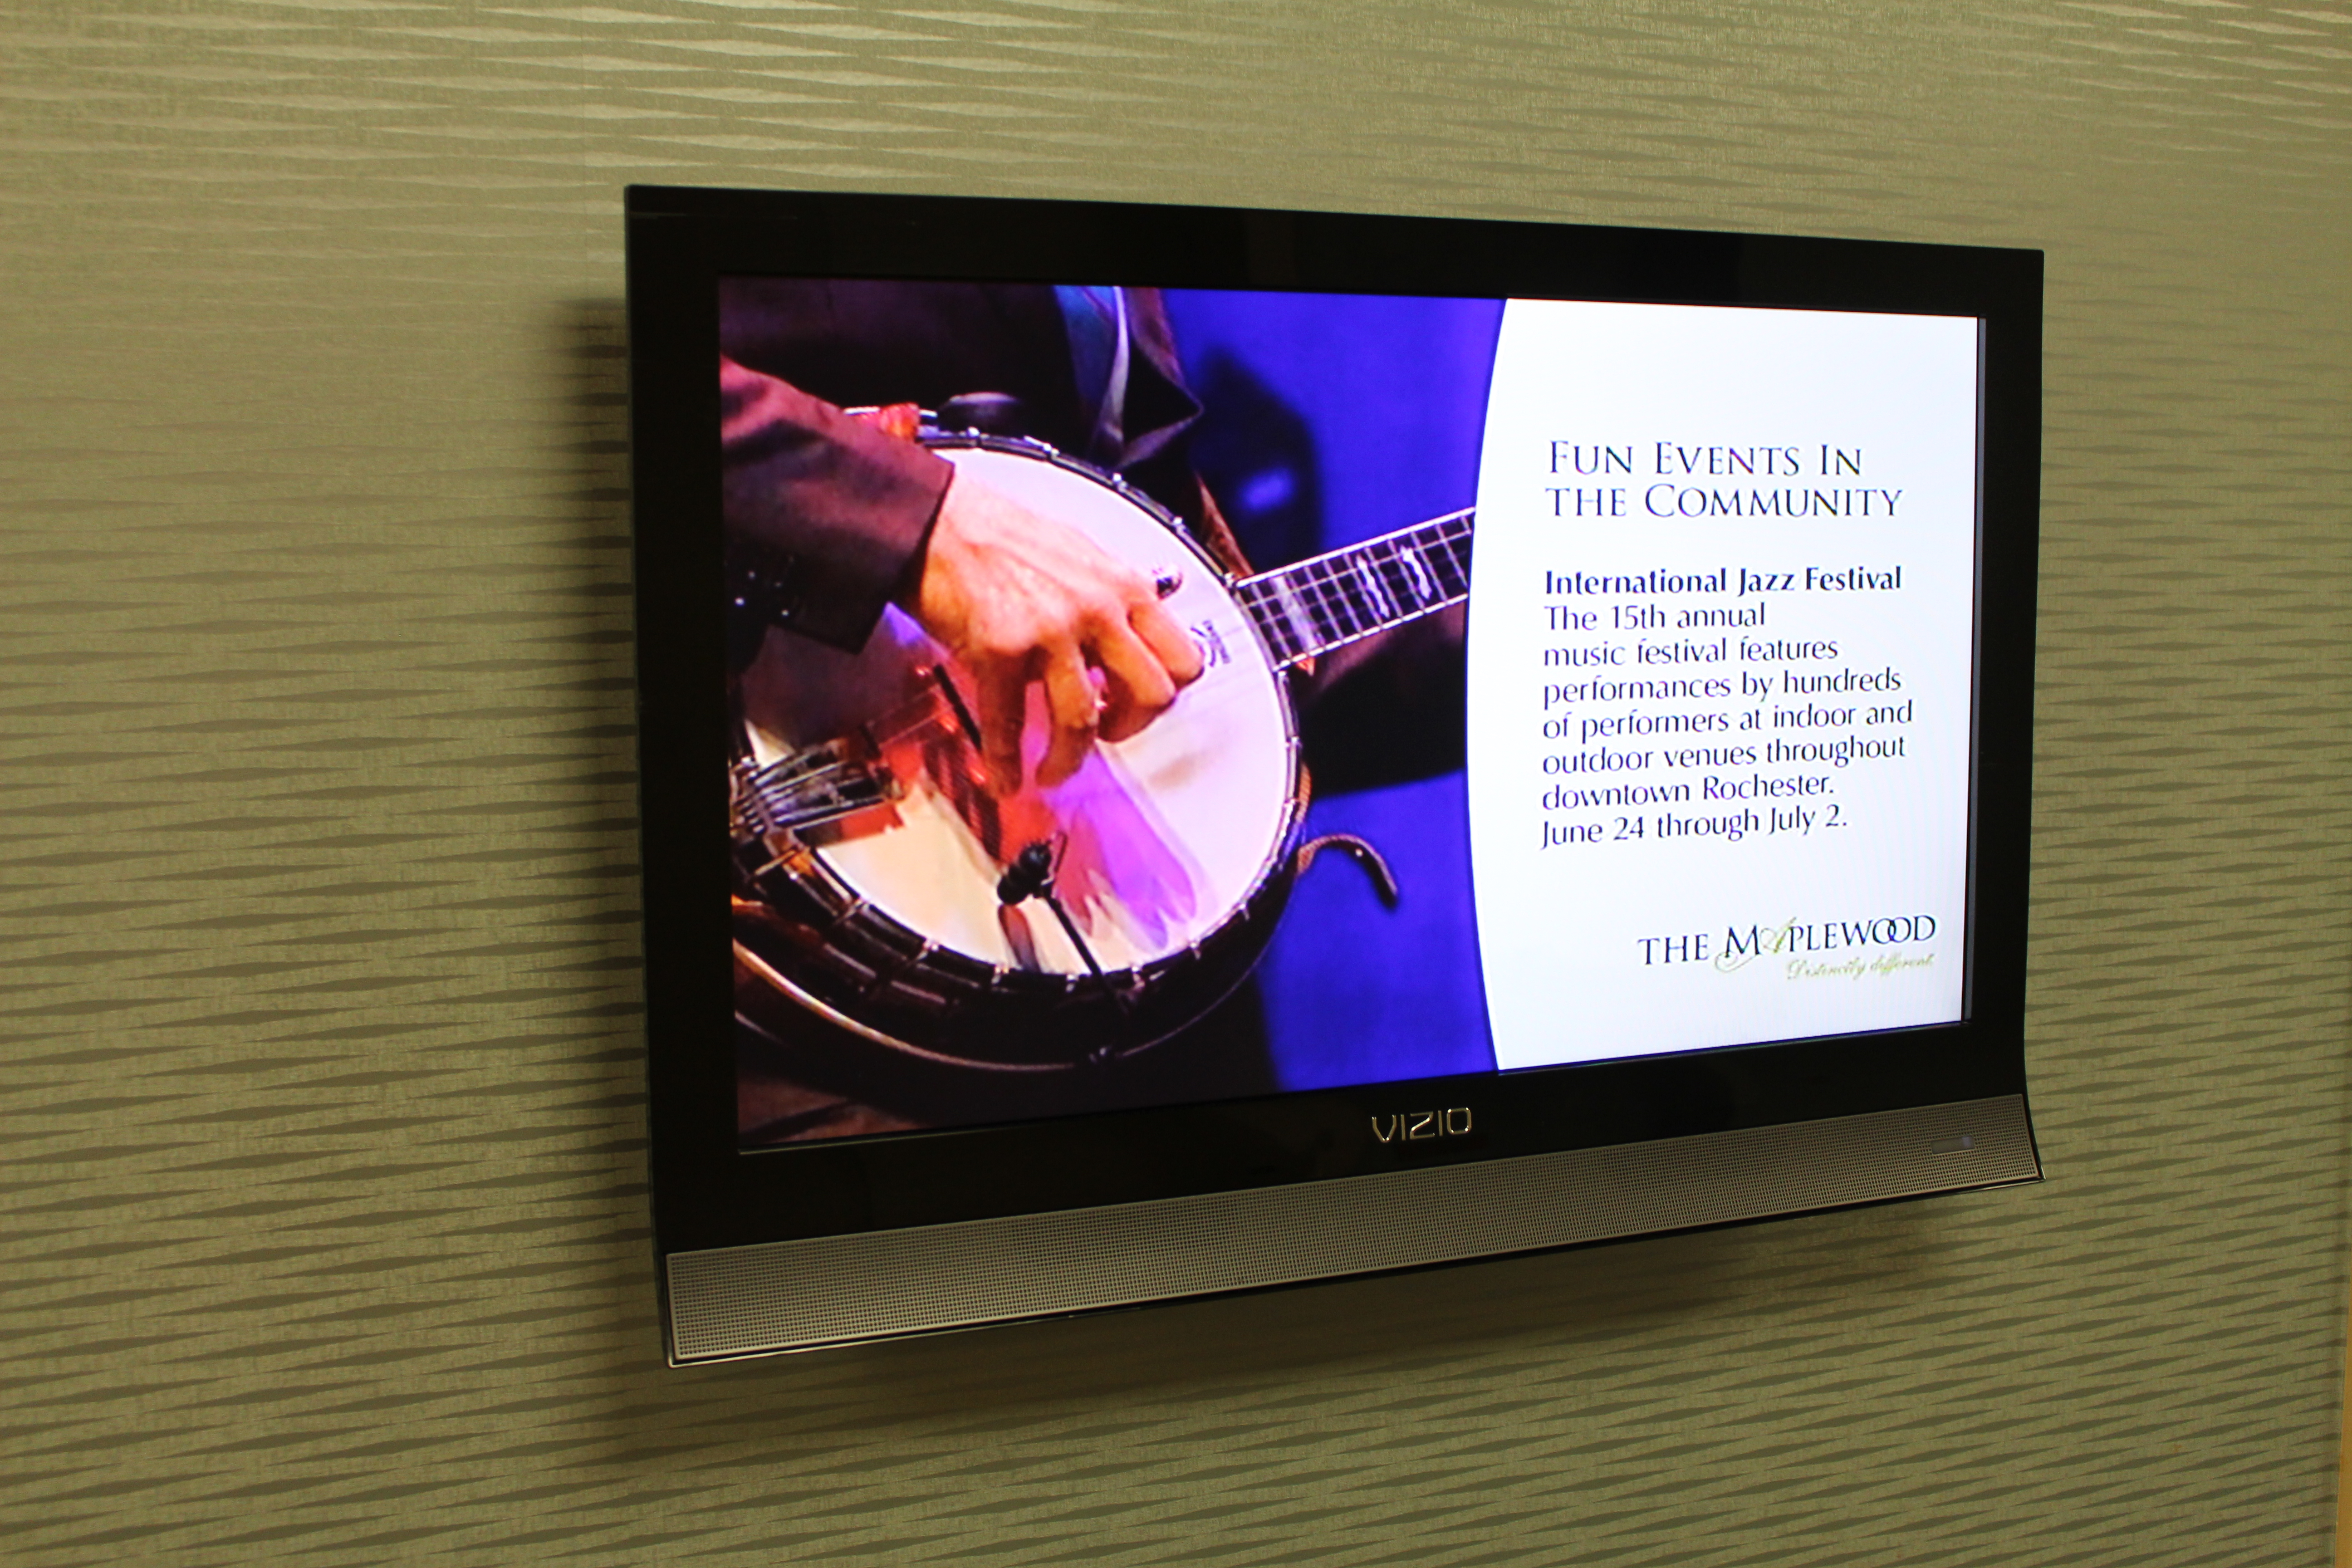 Senior Living Digital Signage